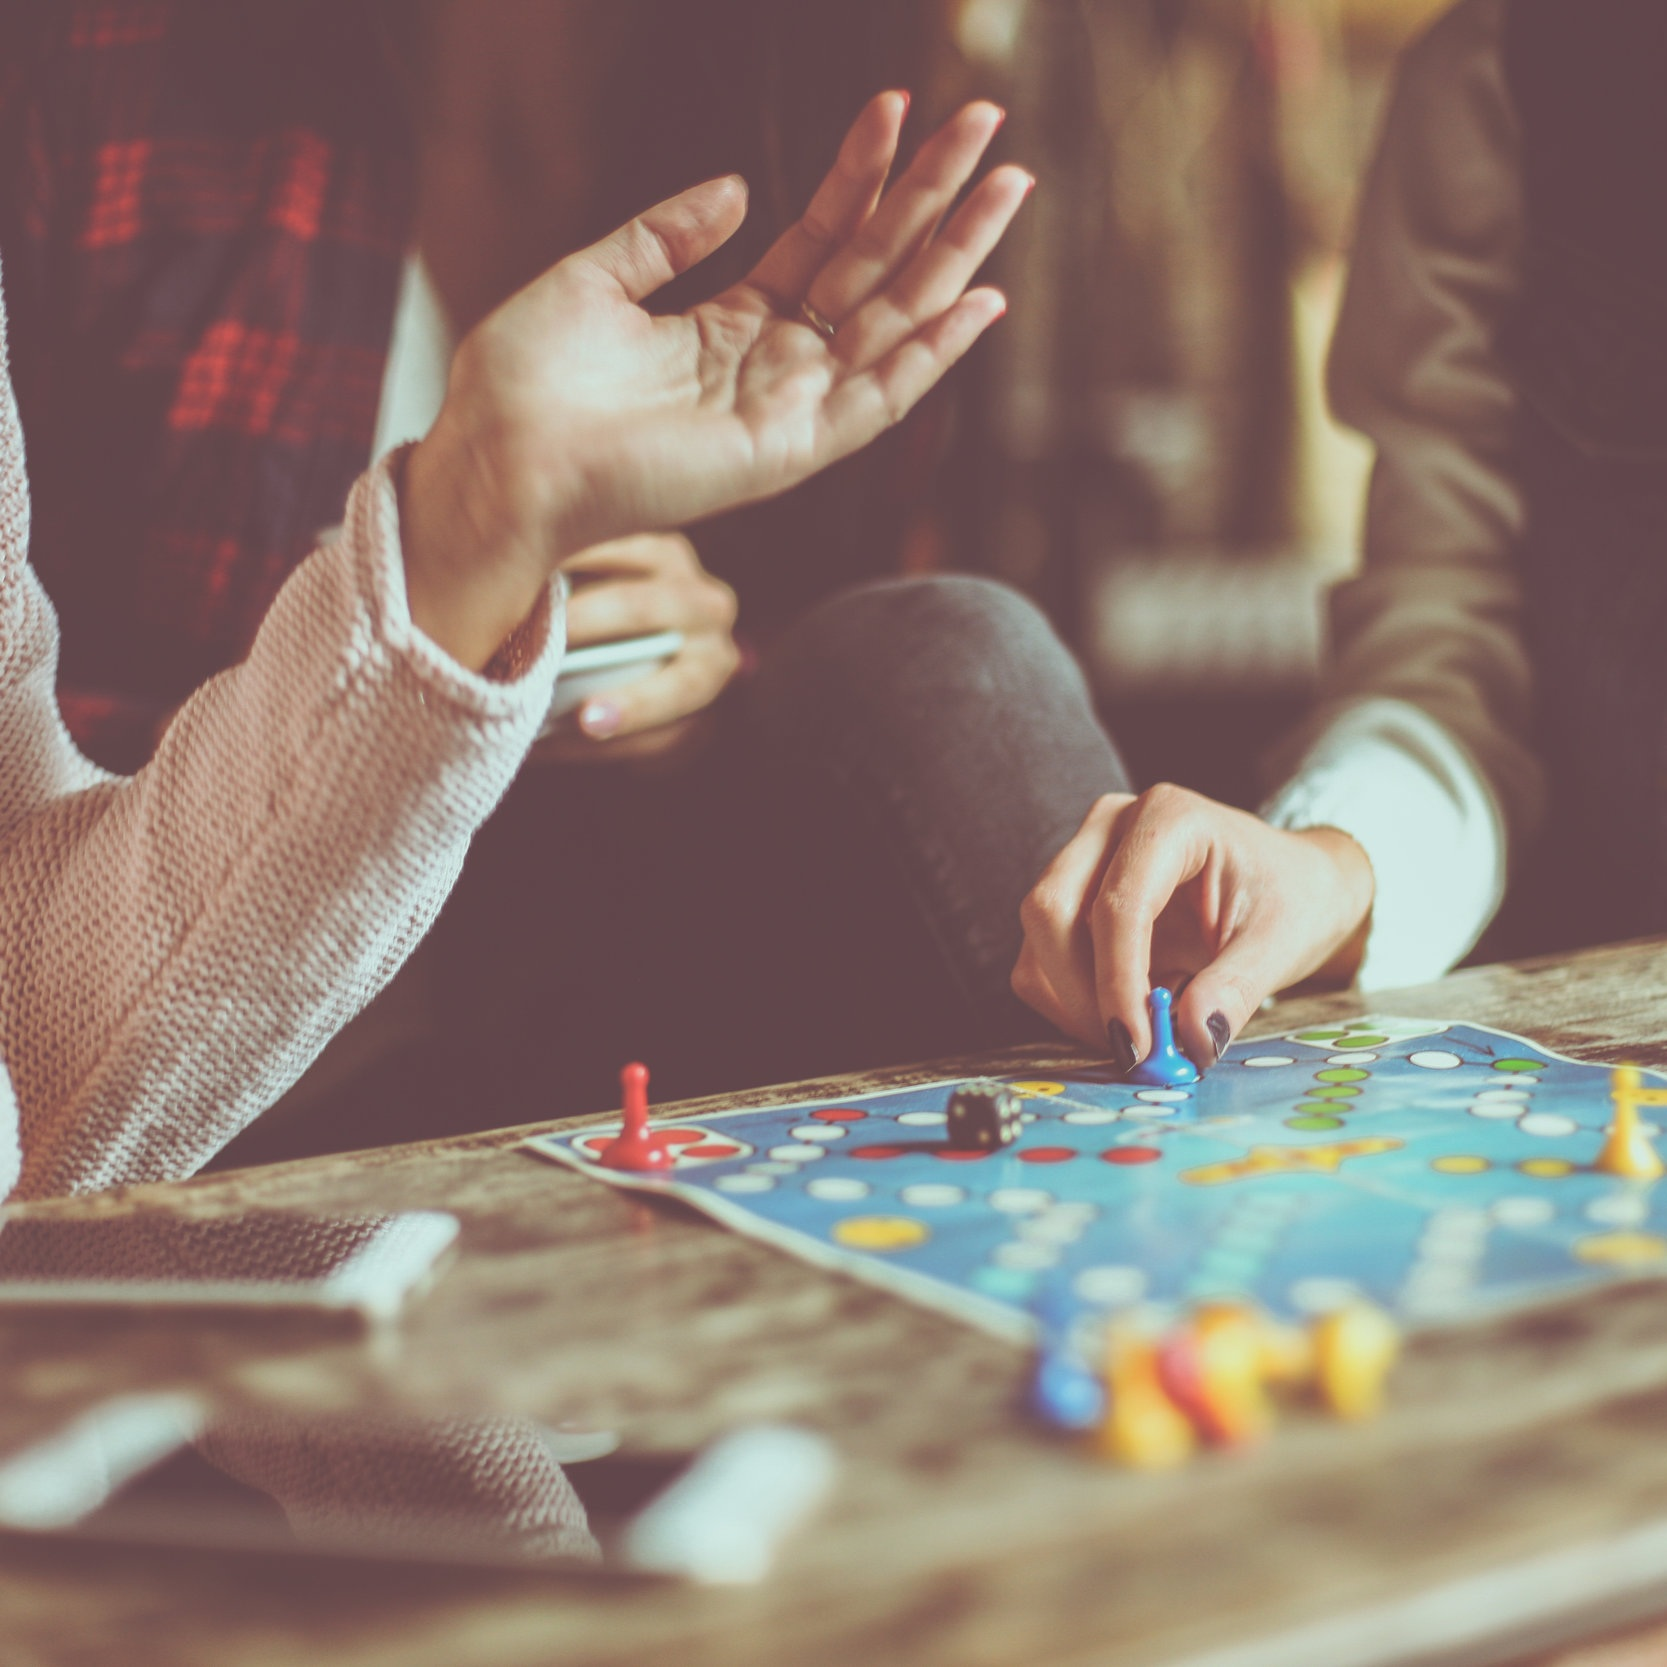 Board Games - Hello everyone! I enjoy connecting with others and bringing people together for fellowship and community. I have many interests including music, hiking, camping, and board games.I have many games, but feel free to bring your own. There will be friendly, but sometimes intense, competition and cooperative play alike.